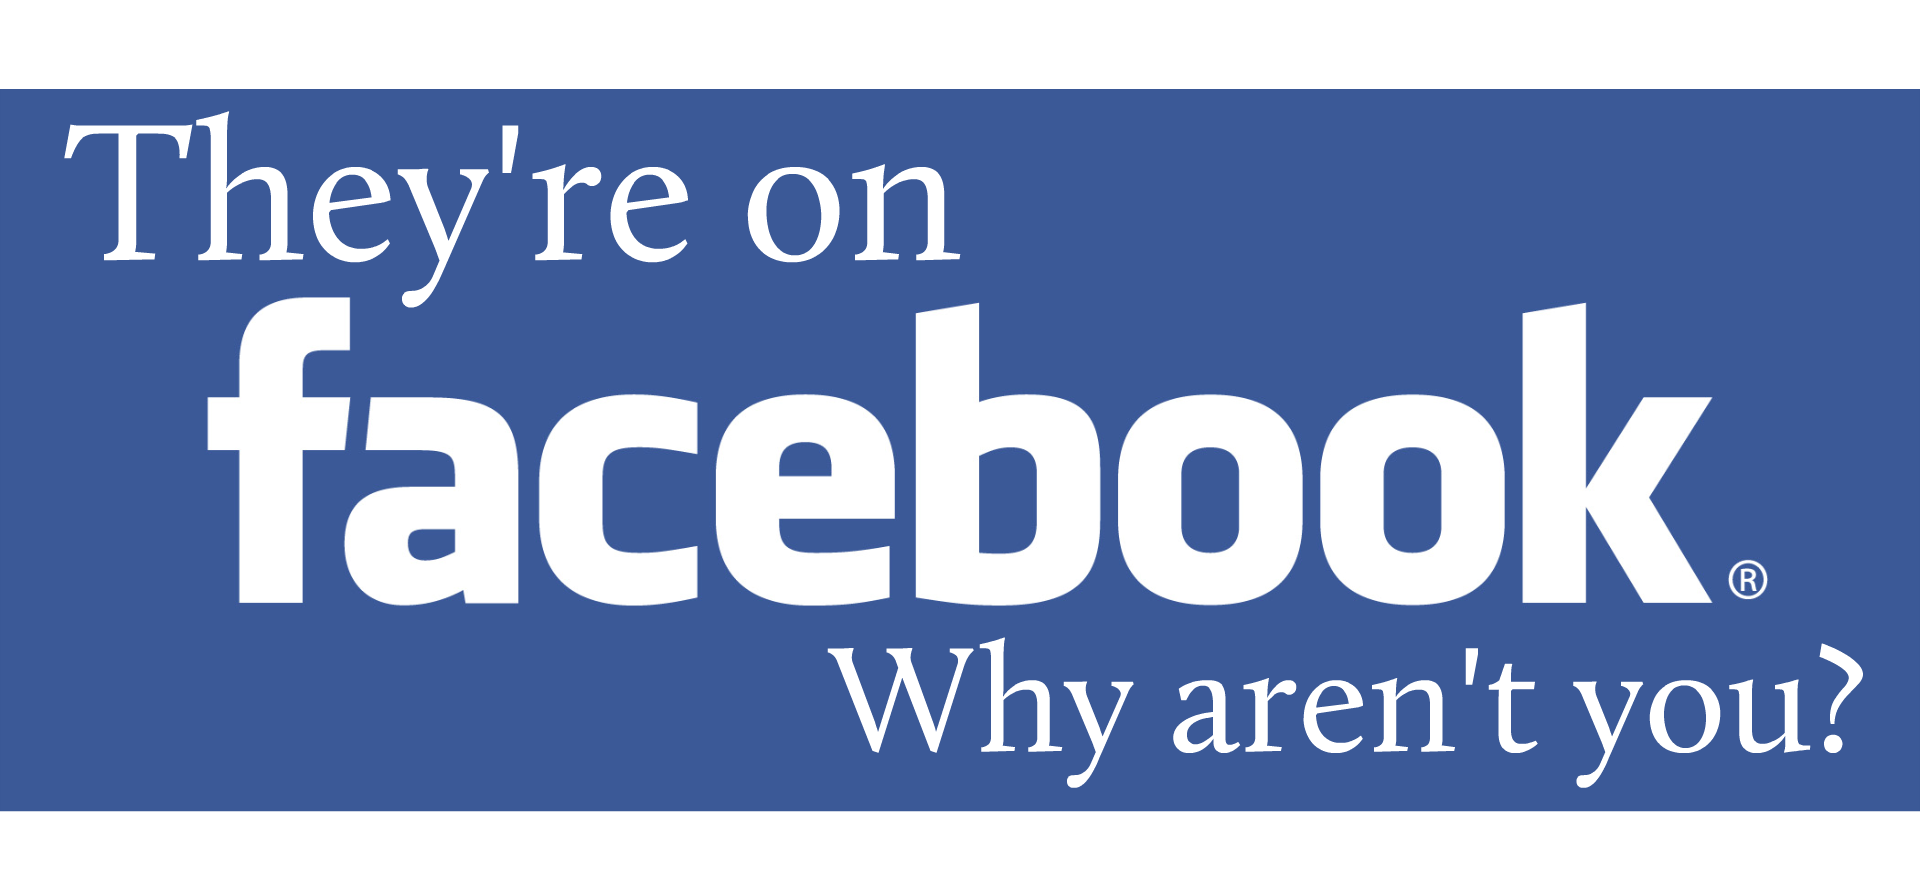 They're on Facebook, So Why Aren't You?